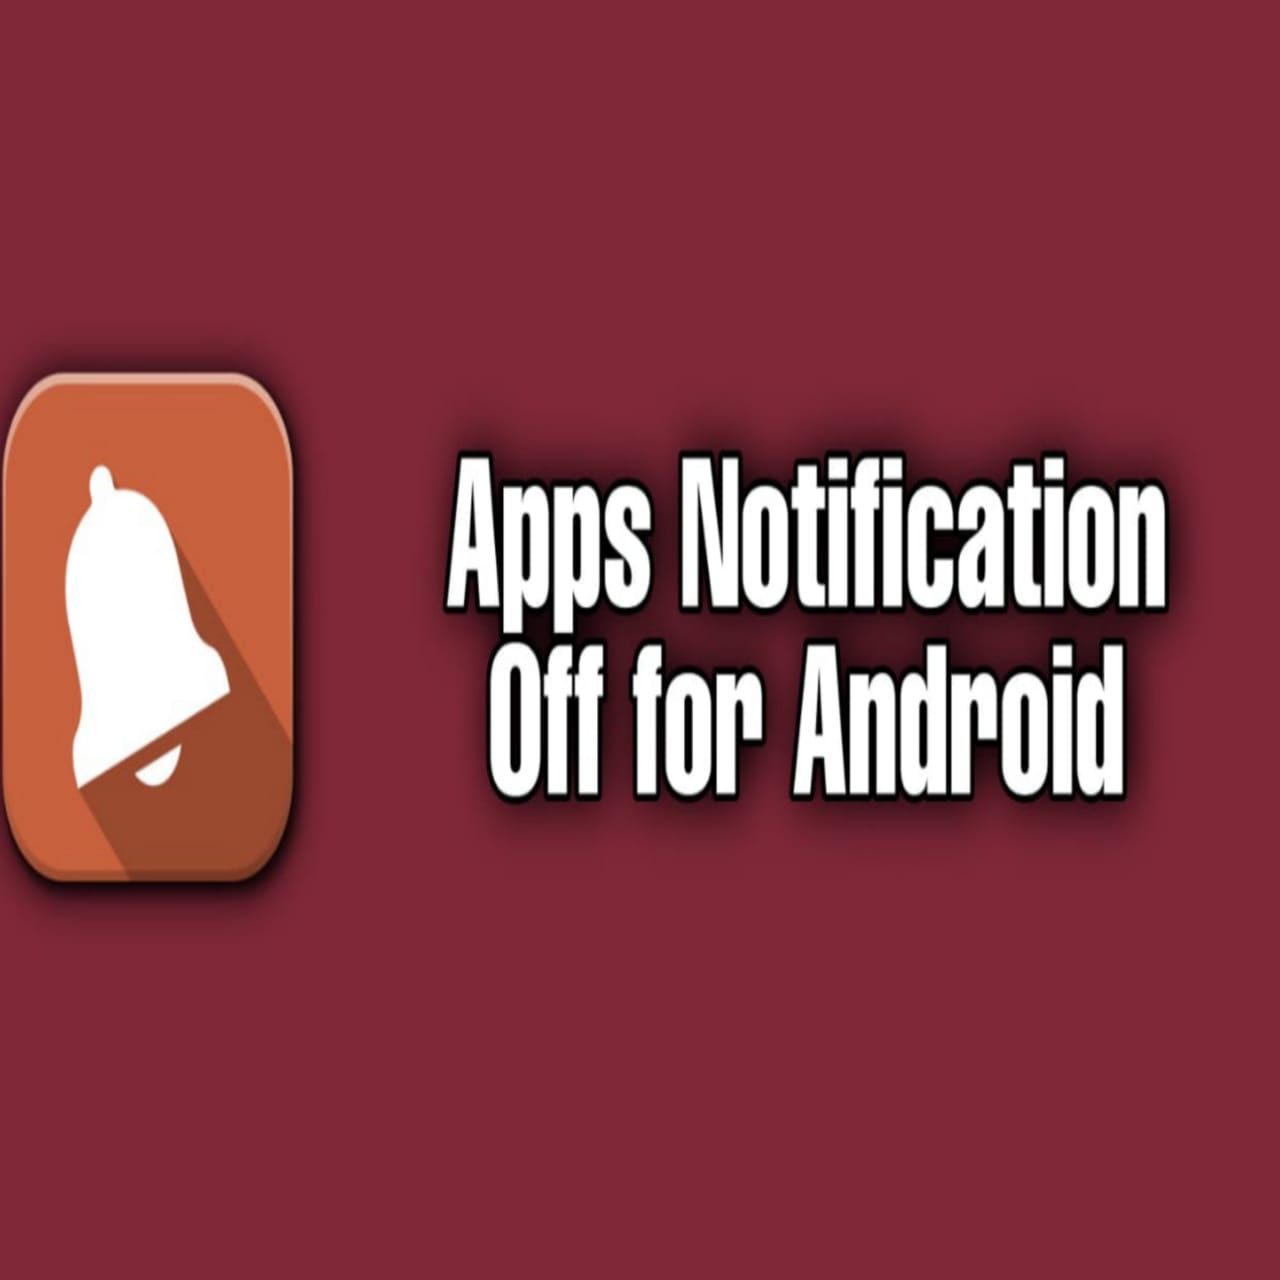 How to turn off Apps Notifications for Android